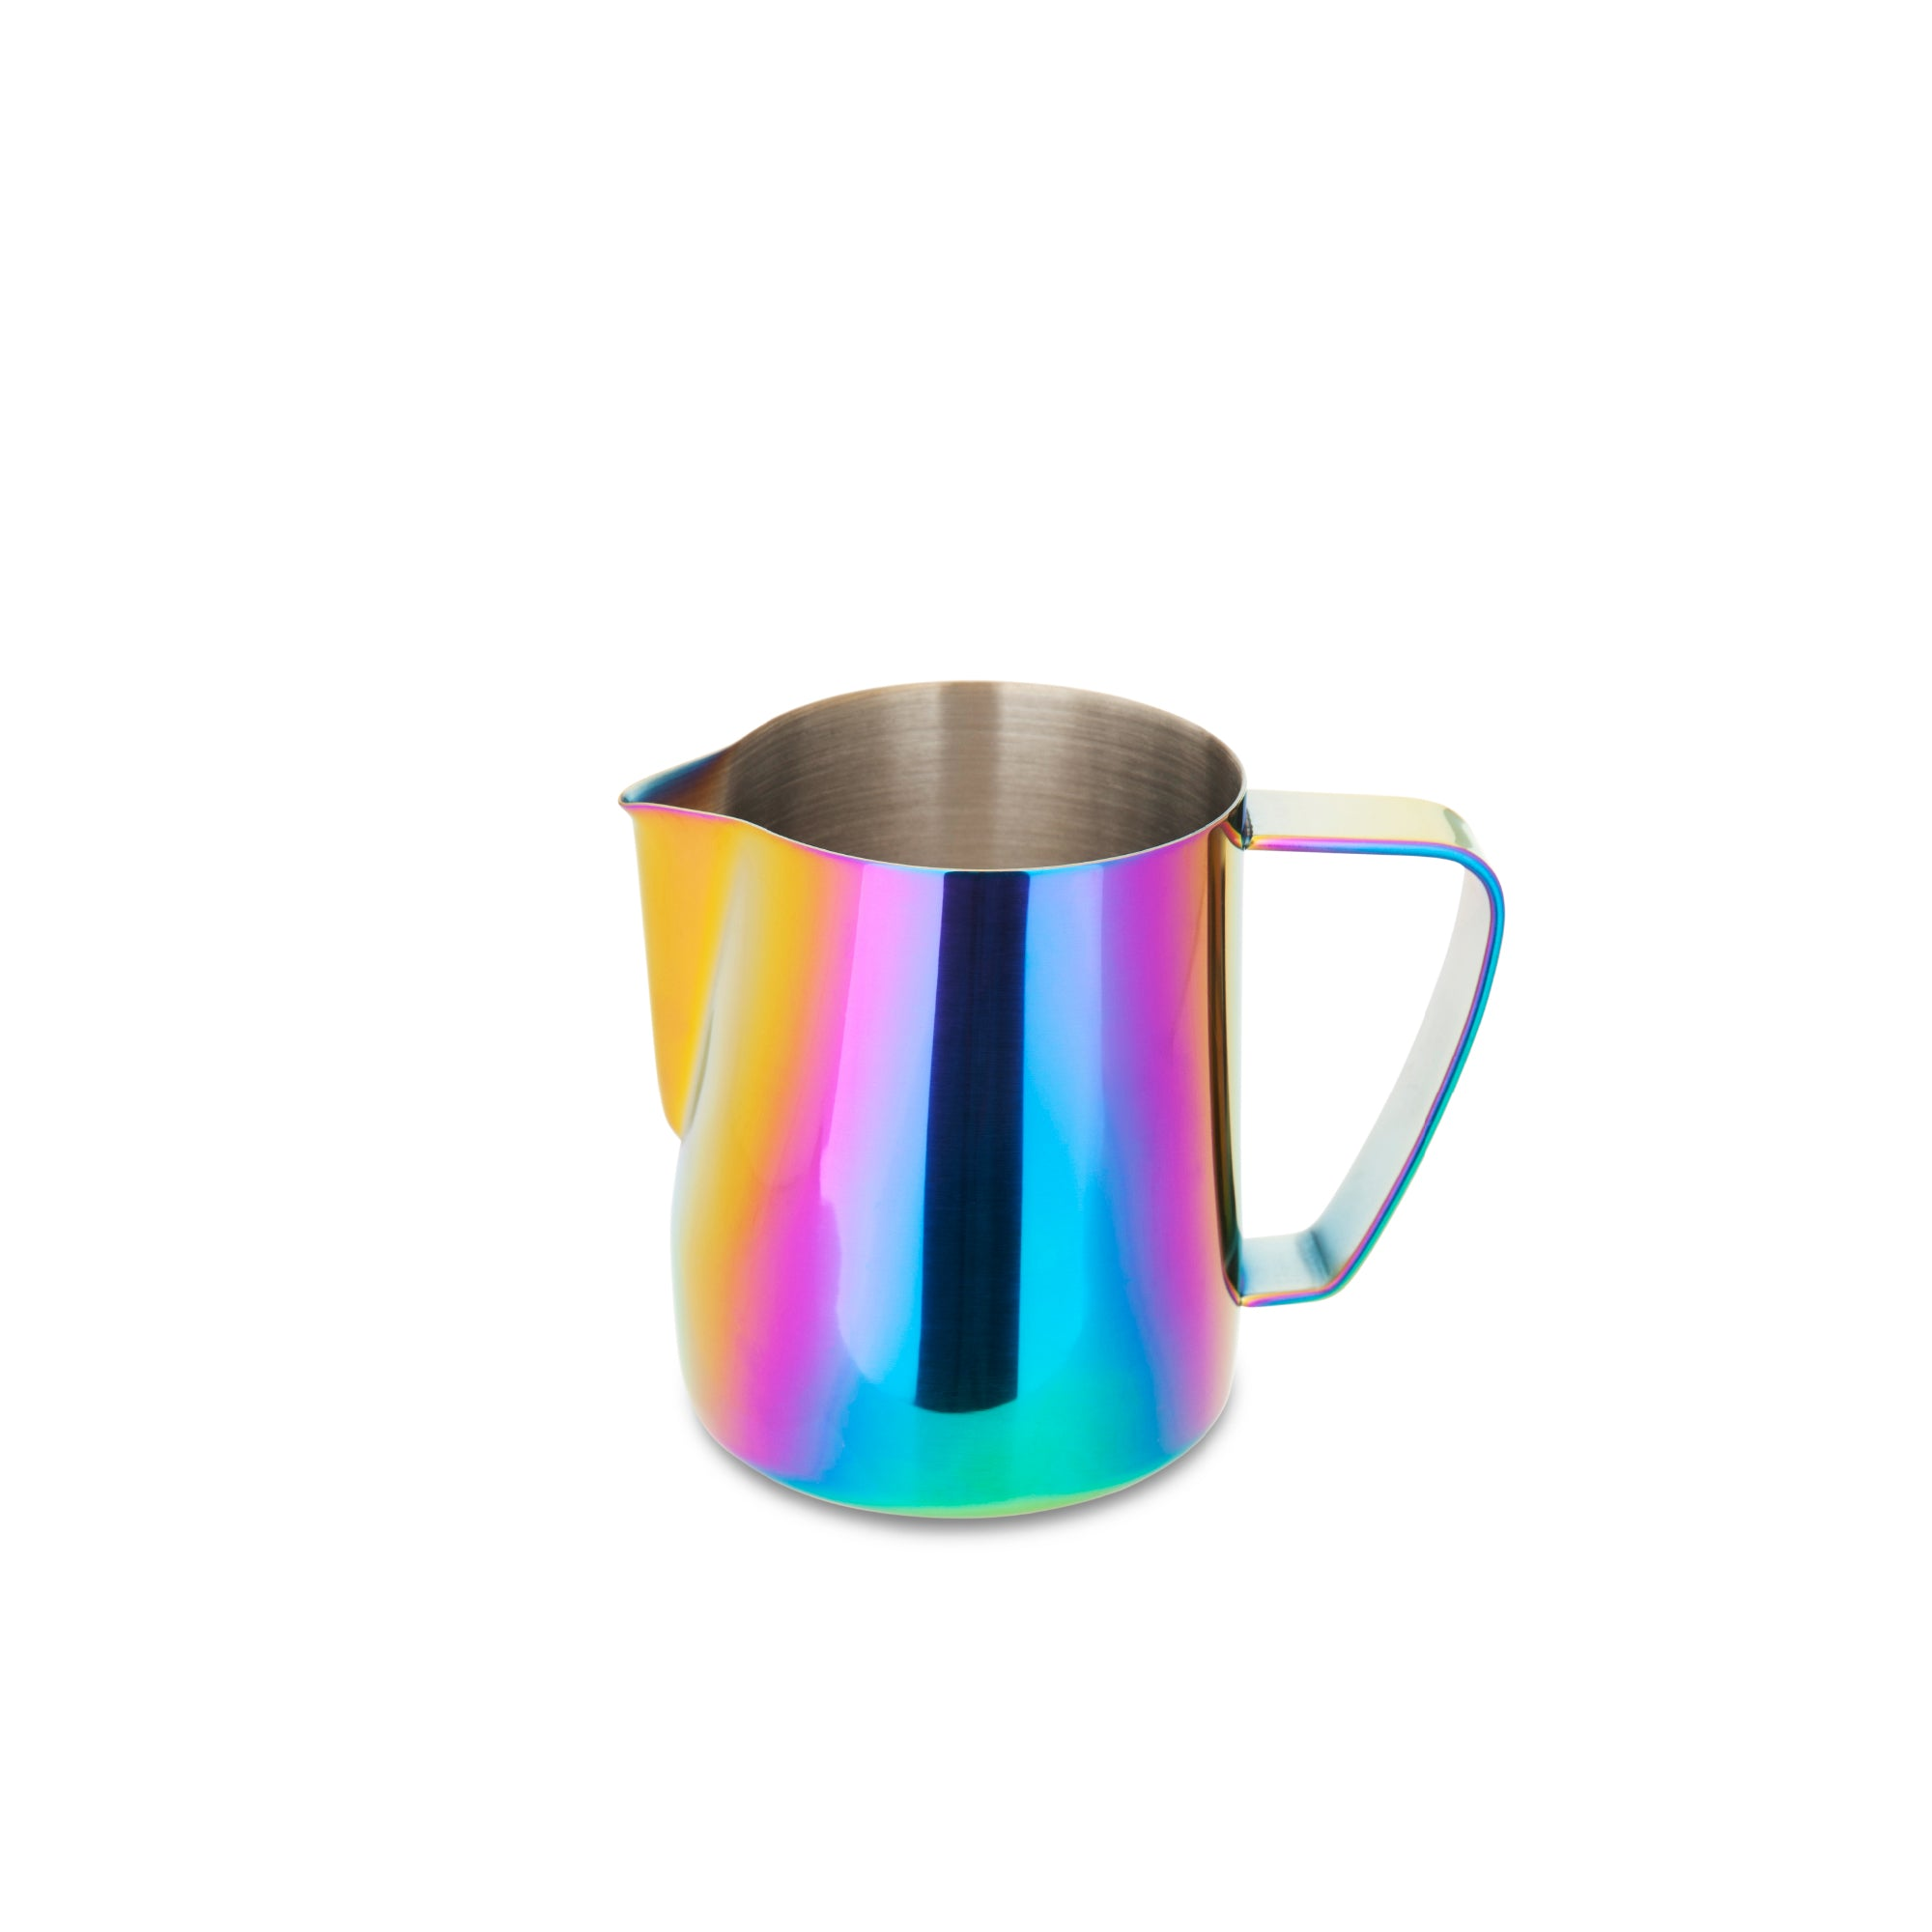 EspressoWorks Stainless Steel Milk Frothing Jug - Rainbow (350ml)